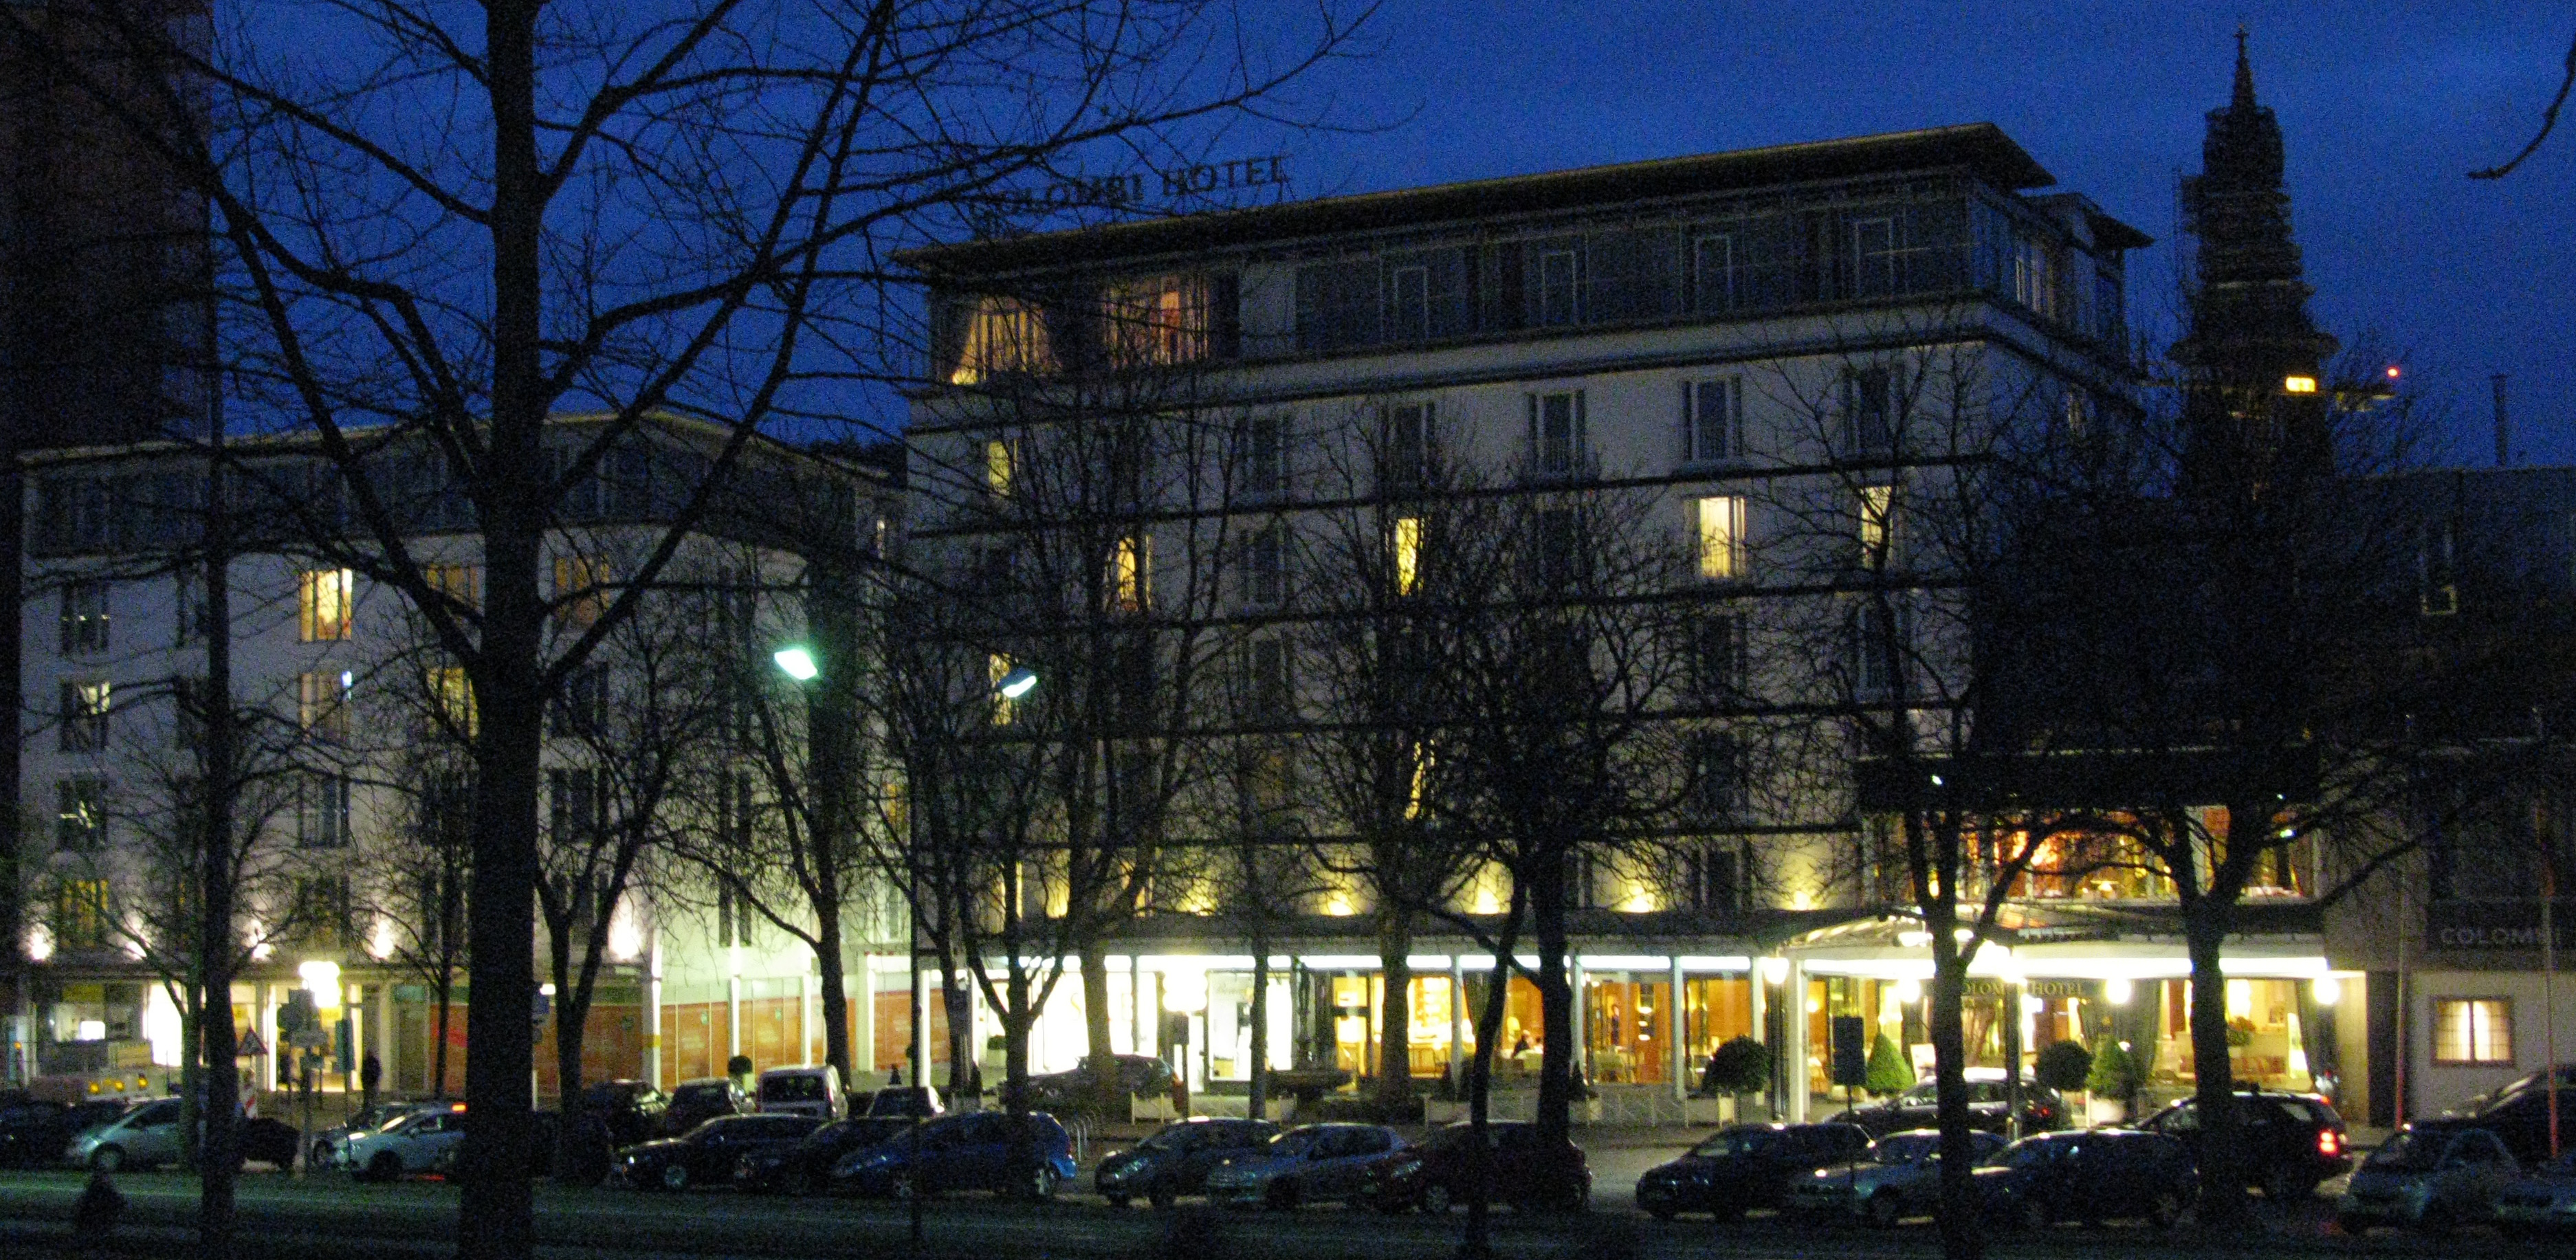 Colombi Hotel Freiburg File Colombi Hotel Jpg Wikimedia Commons